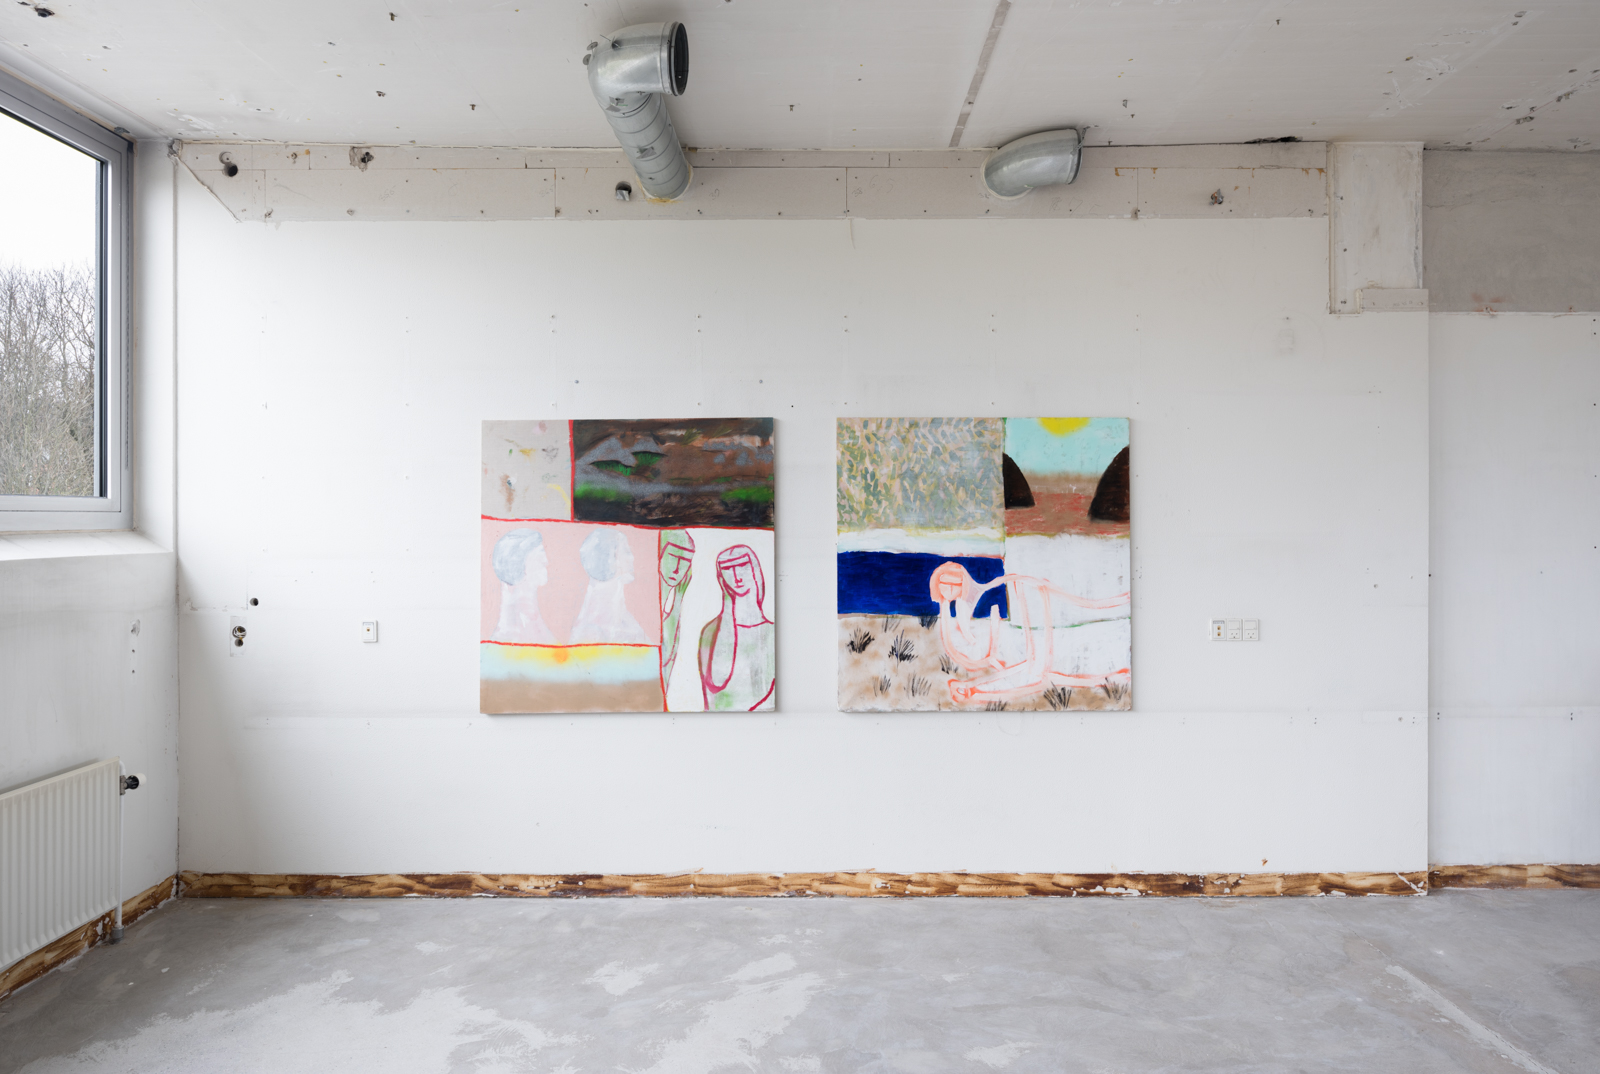 Left:  Losing All Meaning , 2017   Spray, acrylics and oil on linen H: 120 cm W: 120 cm  Right:  It Became a Lying Woman , 2017 Spray, acrylics and oil on linen H: 120 cm W: 120 cm  Photo: David Stjernholm